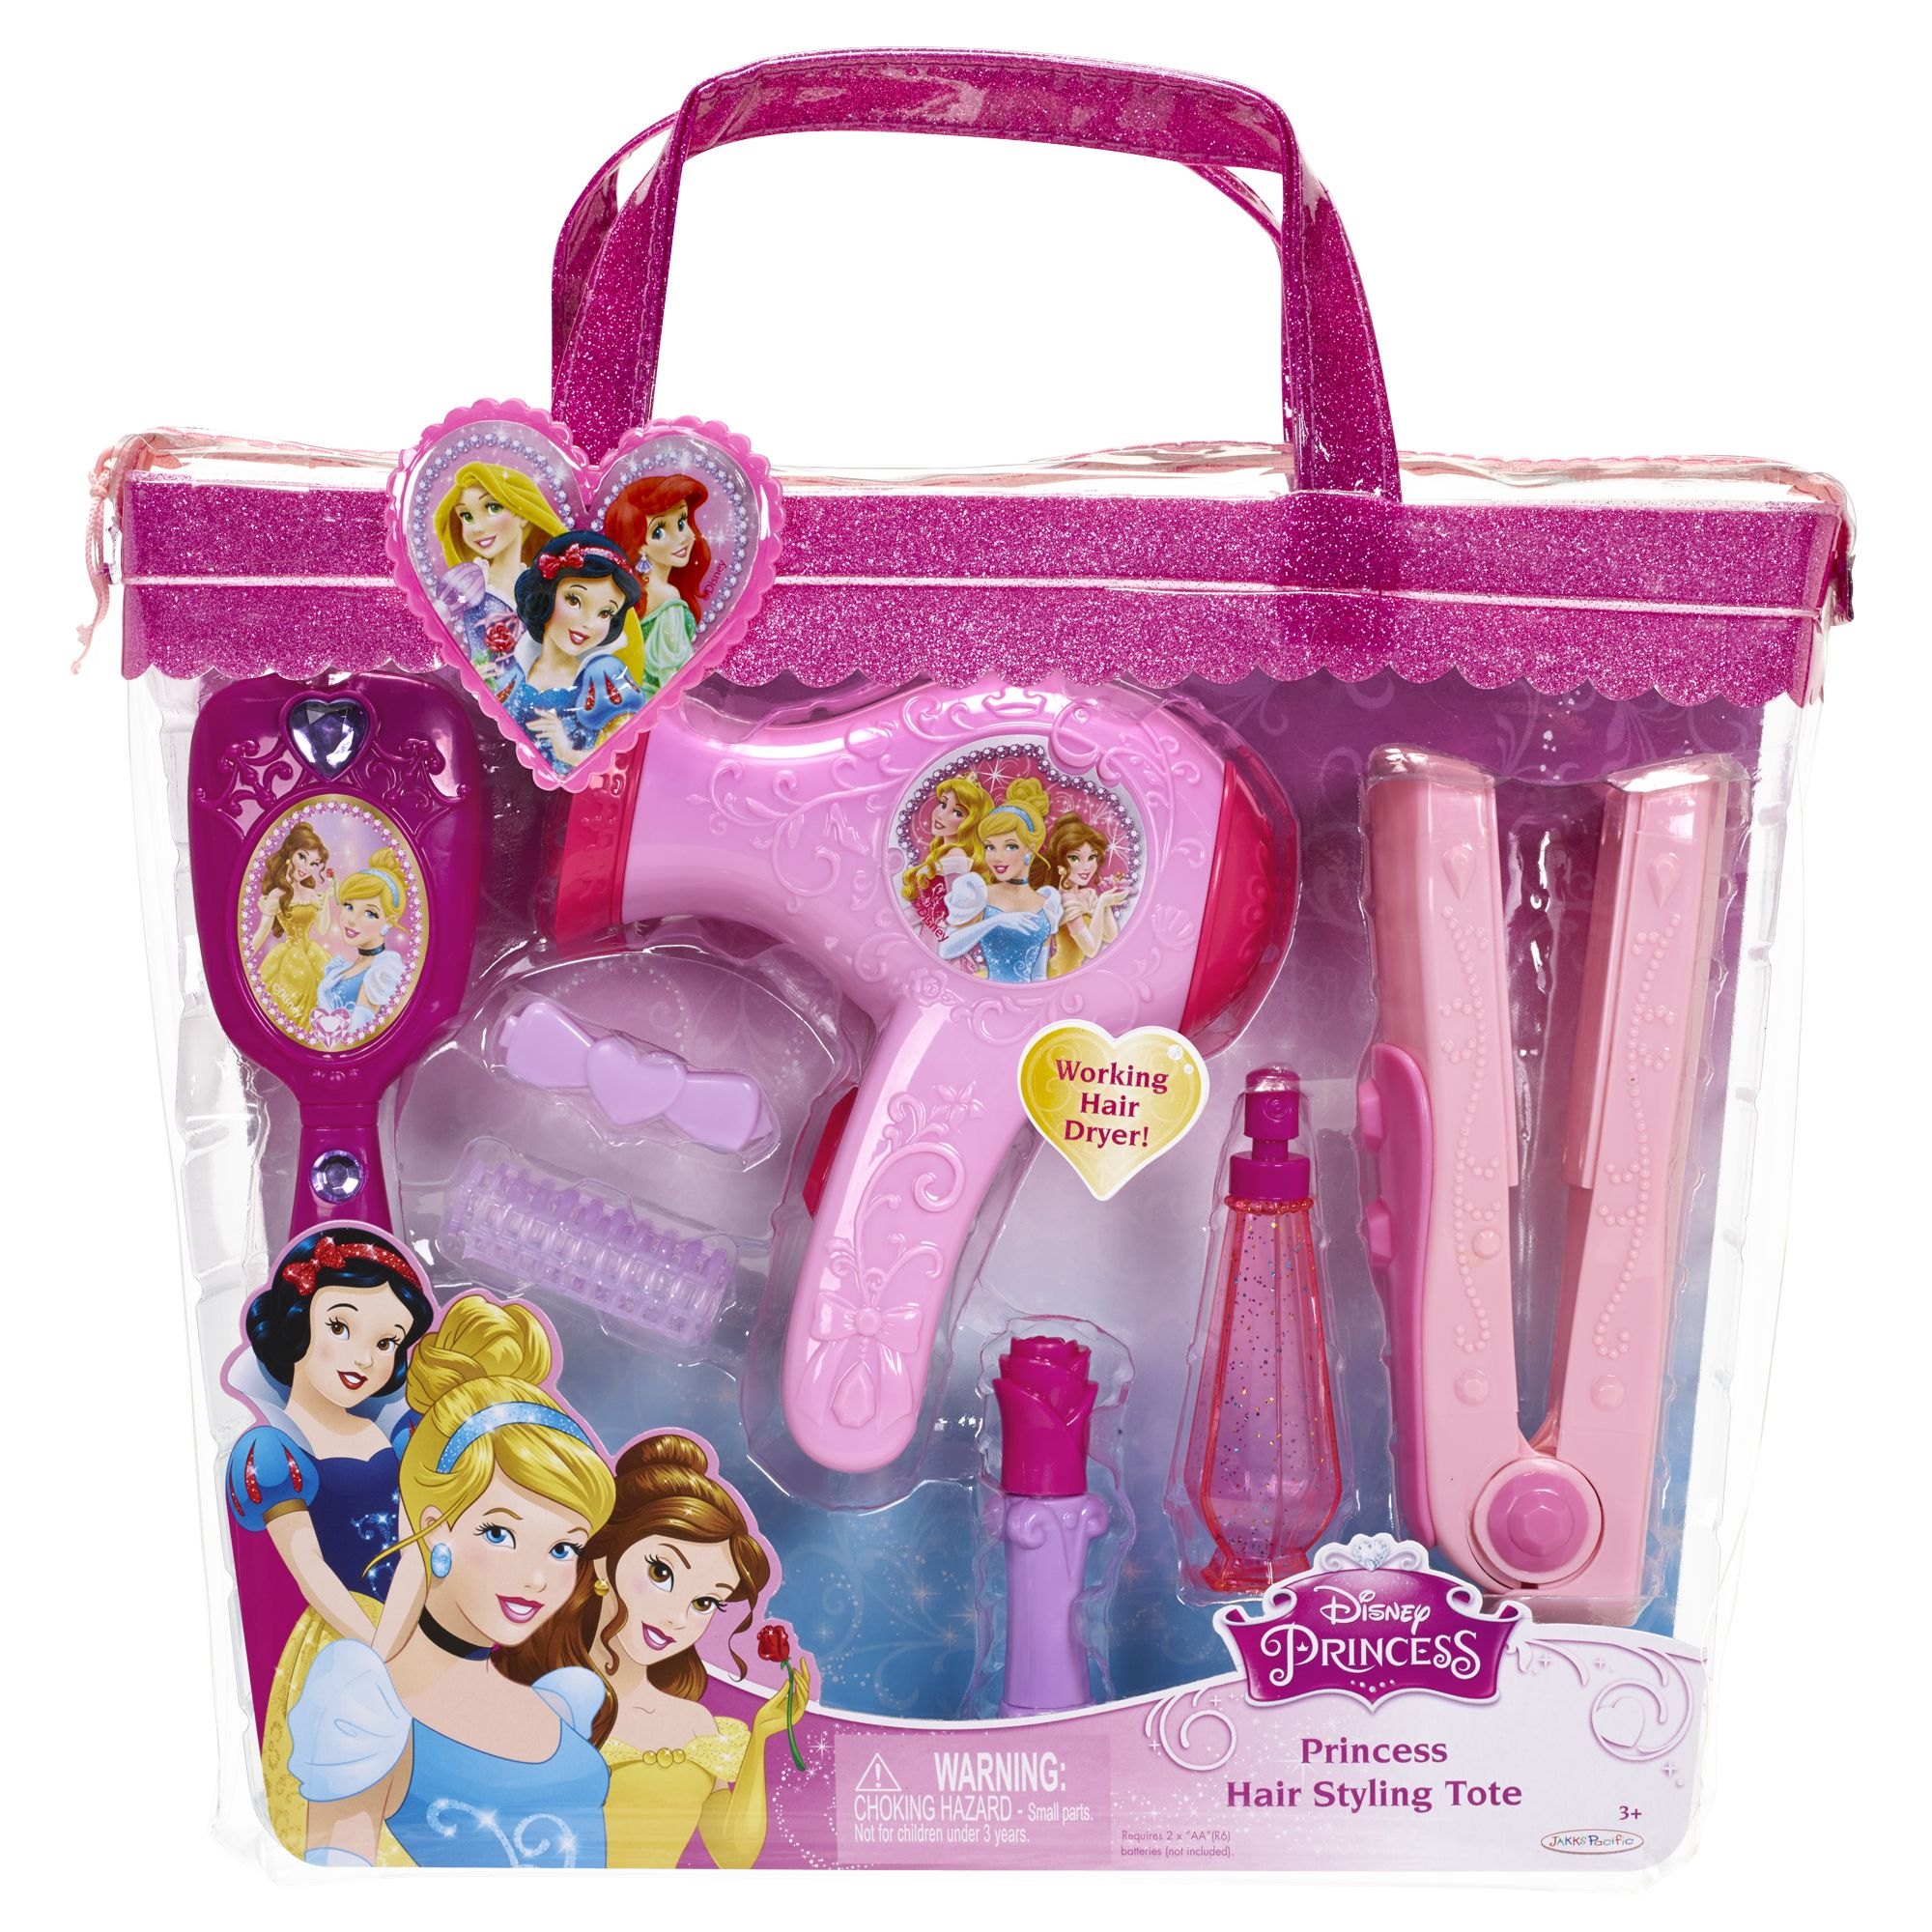 Hair Styling Tote Disney Princess In 2020 Princess Hairstyles Barbie Gifts Diy Barbie Clothes